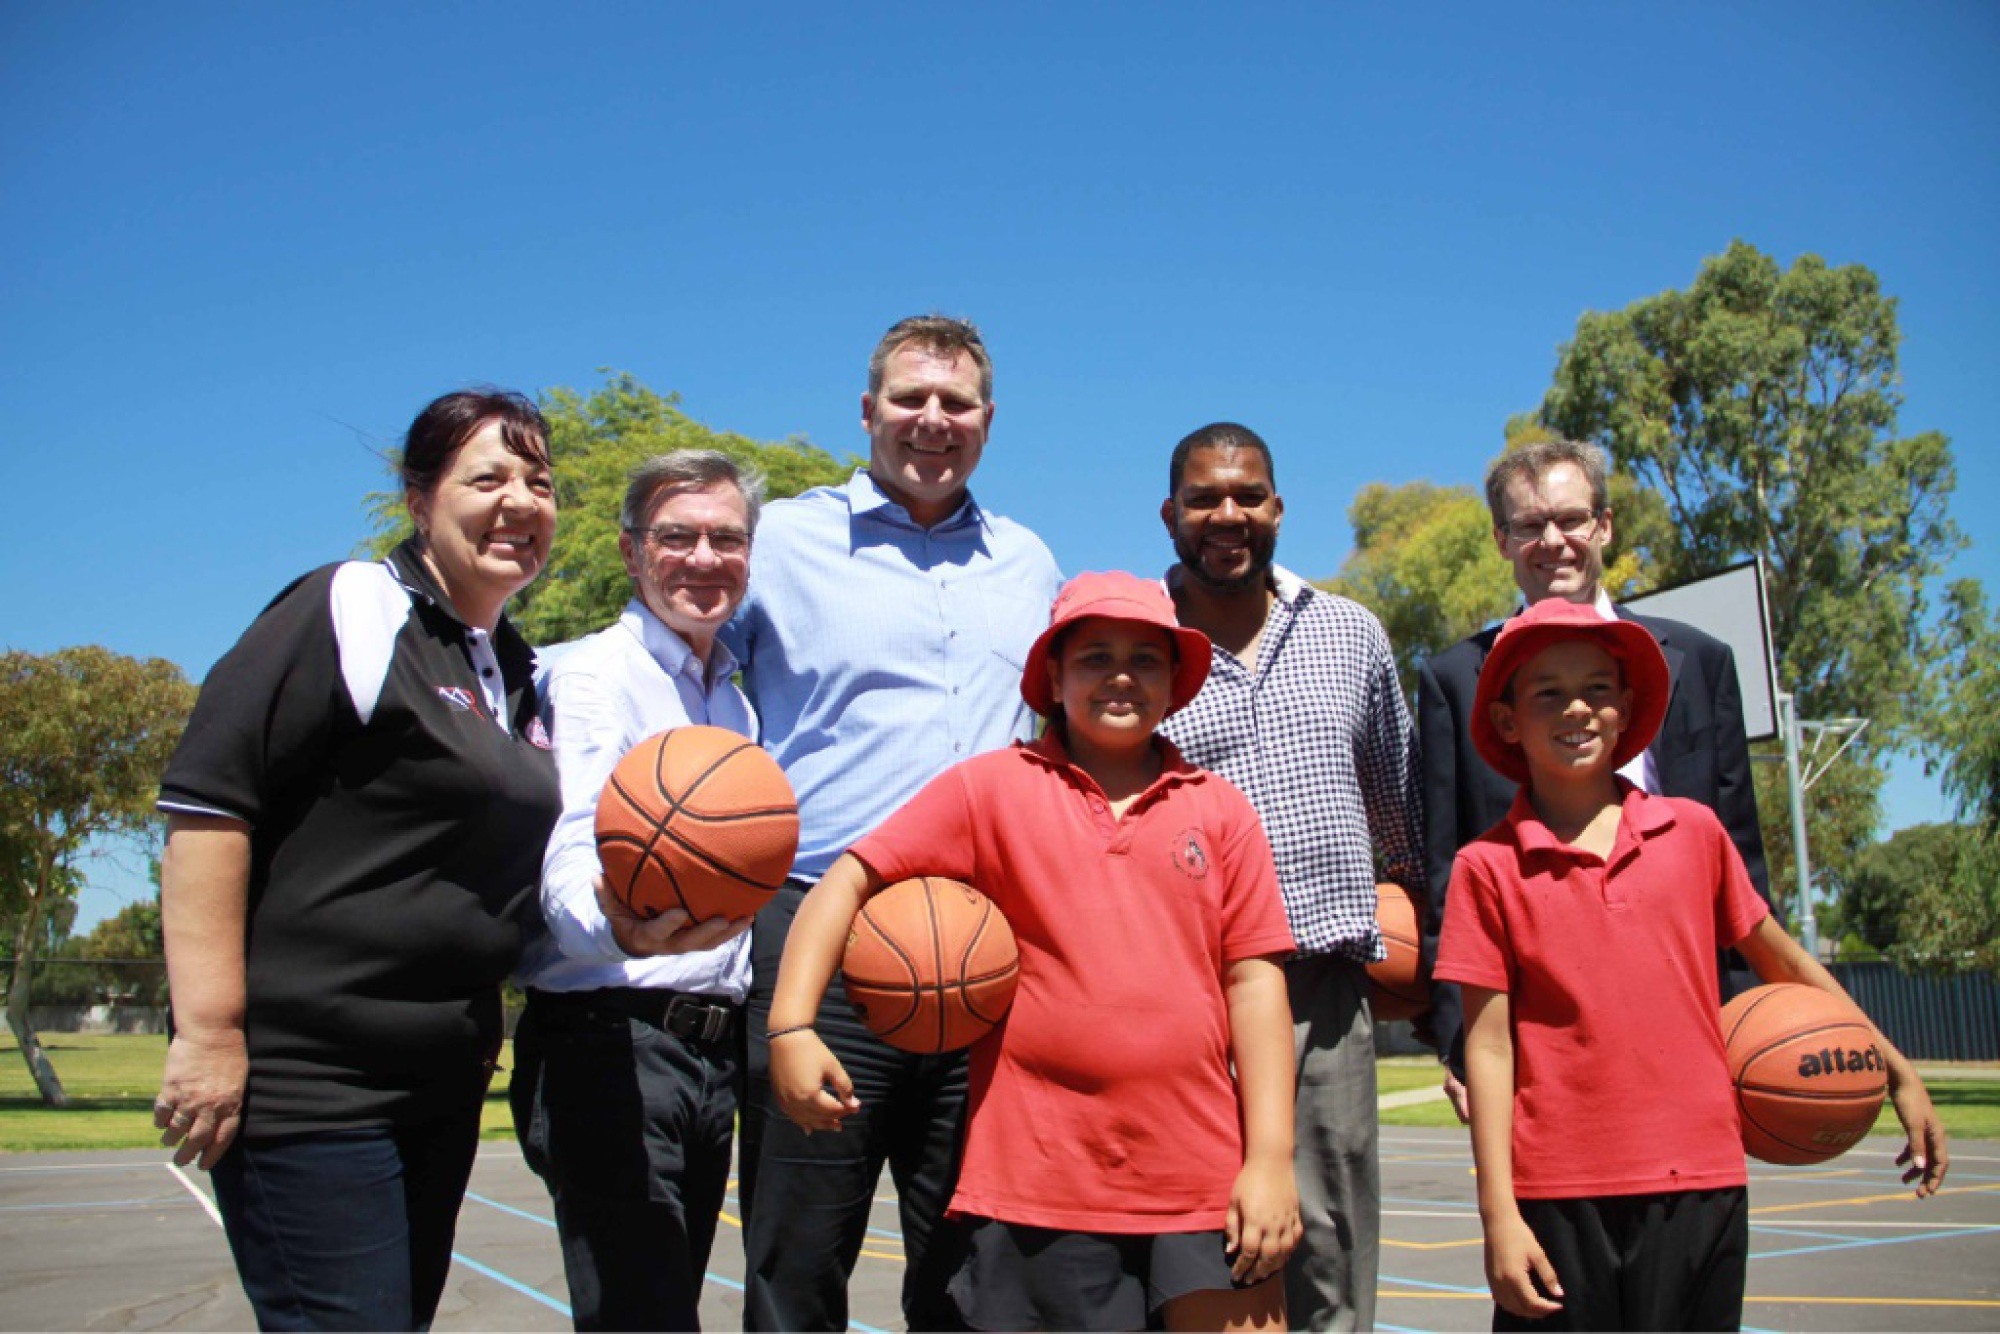 Mineral Resources' Michele Greenwell, Brand MHR Gary Gray, Andrew Vlahov, Ricky Grace and Sam Buckeridge (BGC) with Year 6 students Fern and Robert. Below: Robert tries out the new court.